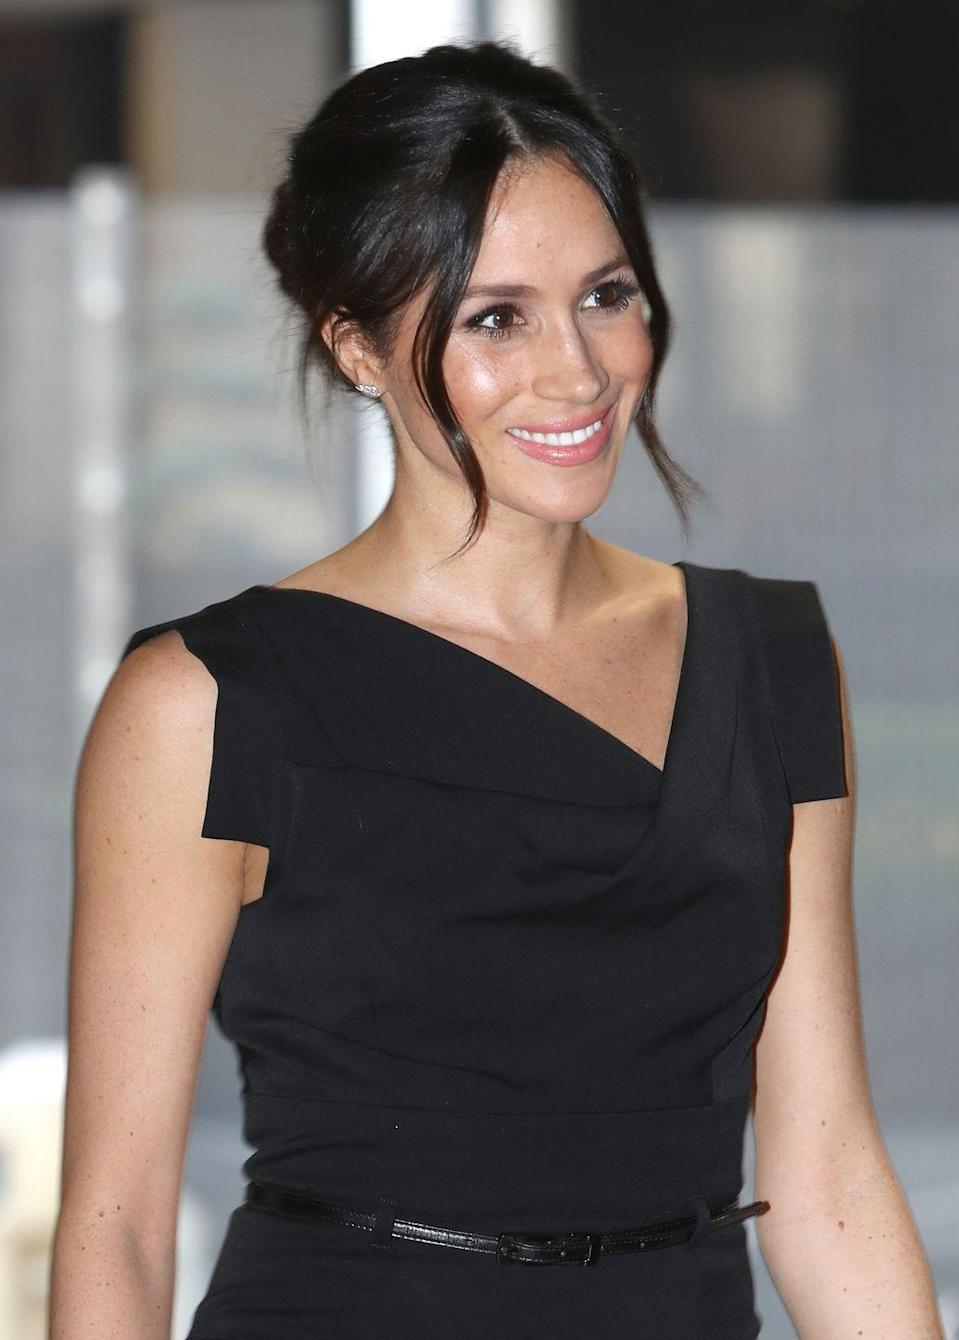 """<p>Meghan follows this protocol too. Though she hasn't shared her beauty bag with the public recently, she did reveal that Nars Blush in Orgasm was one of her can't-live-without beauty products in an <a href=""""https://beautybanter.com/banter-babe-meghan-markle"""" rel=""""nofollow noopener"""" target=""""_blank"""" data-ylk=""""slk:interview with Beauty Banter"""" class=""""link rapid-noclick-resp"""">interview with Beauty Banter</a>.</p>"""